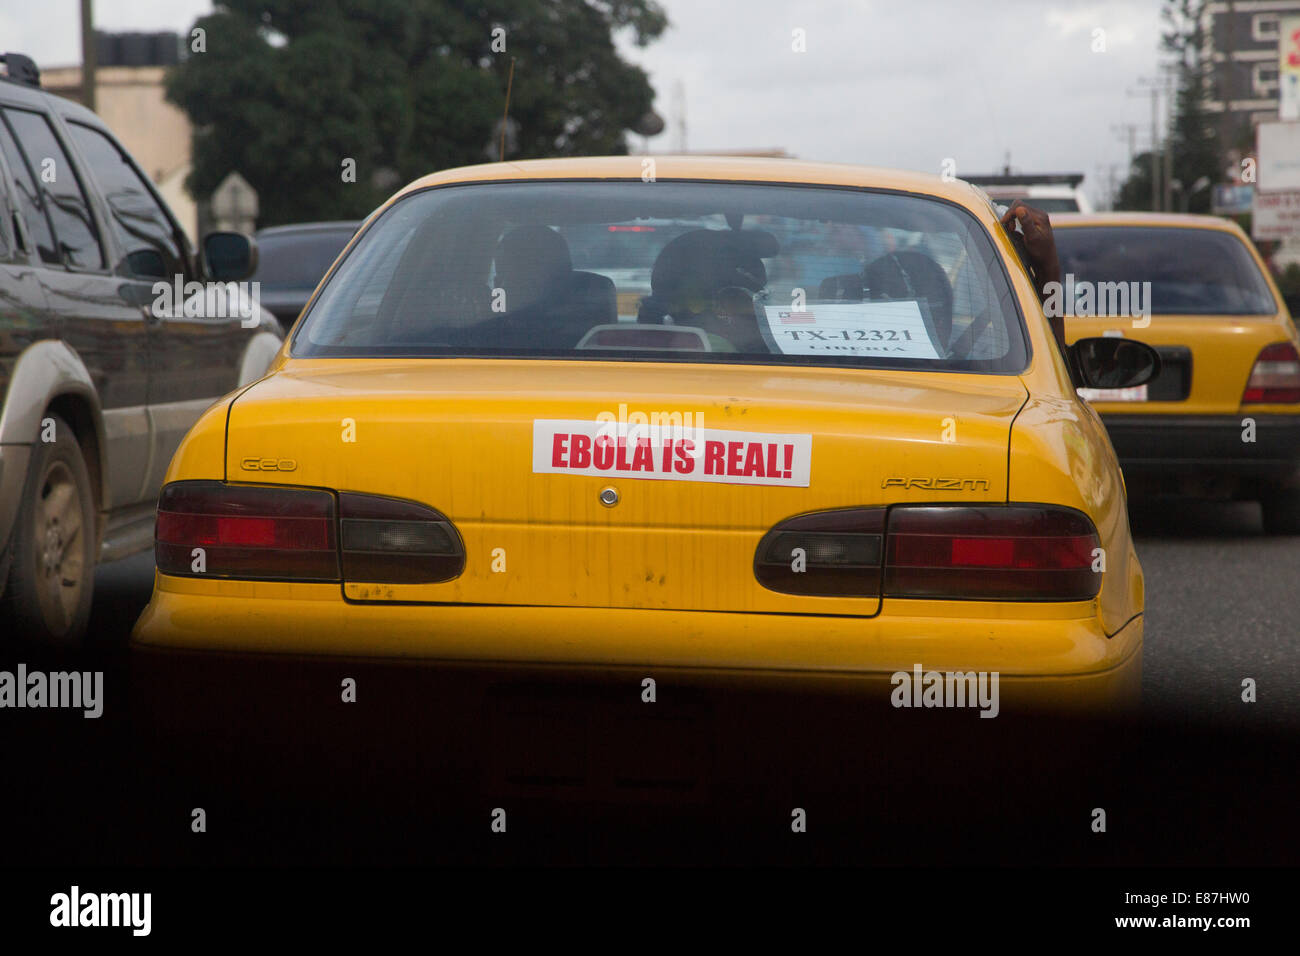 A taxi in Monrovia Liberia has a bumper sitcker that reads, Ebola Is Real!. 2014-09-01 12:37:41 - Stock Image